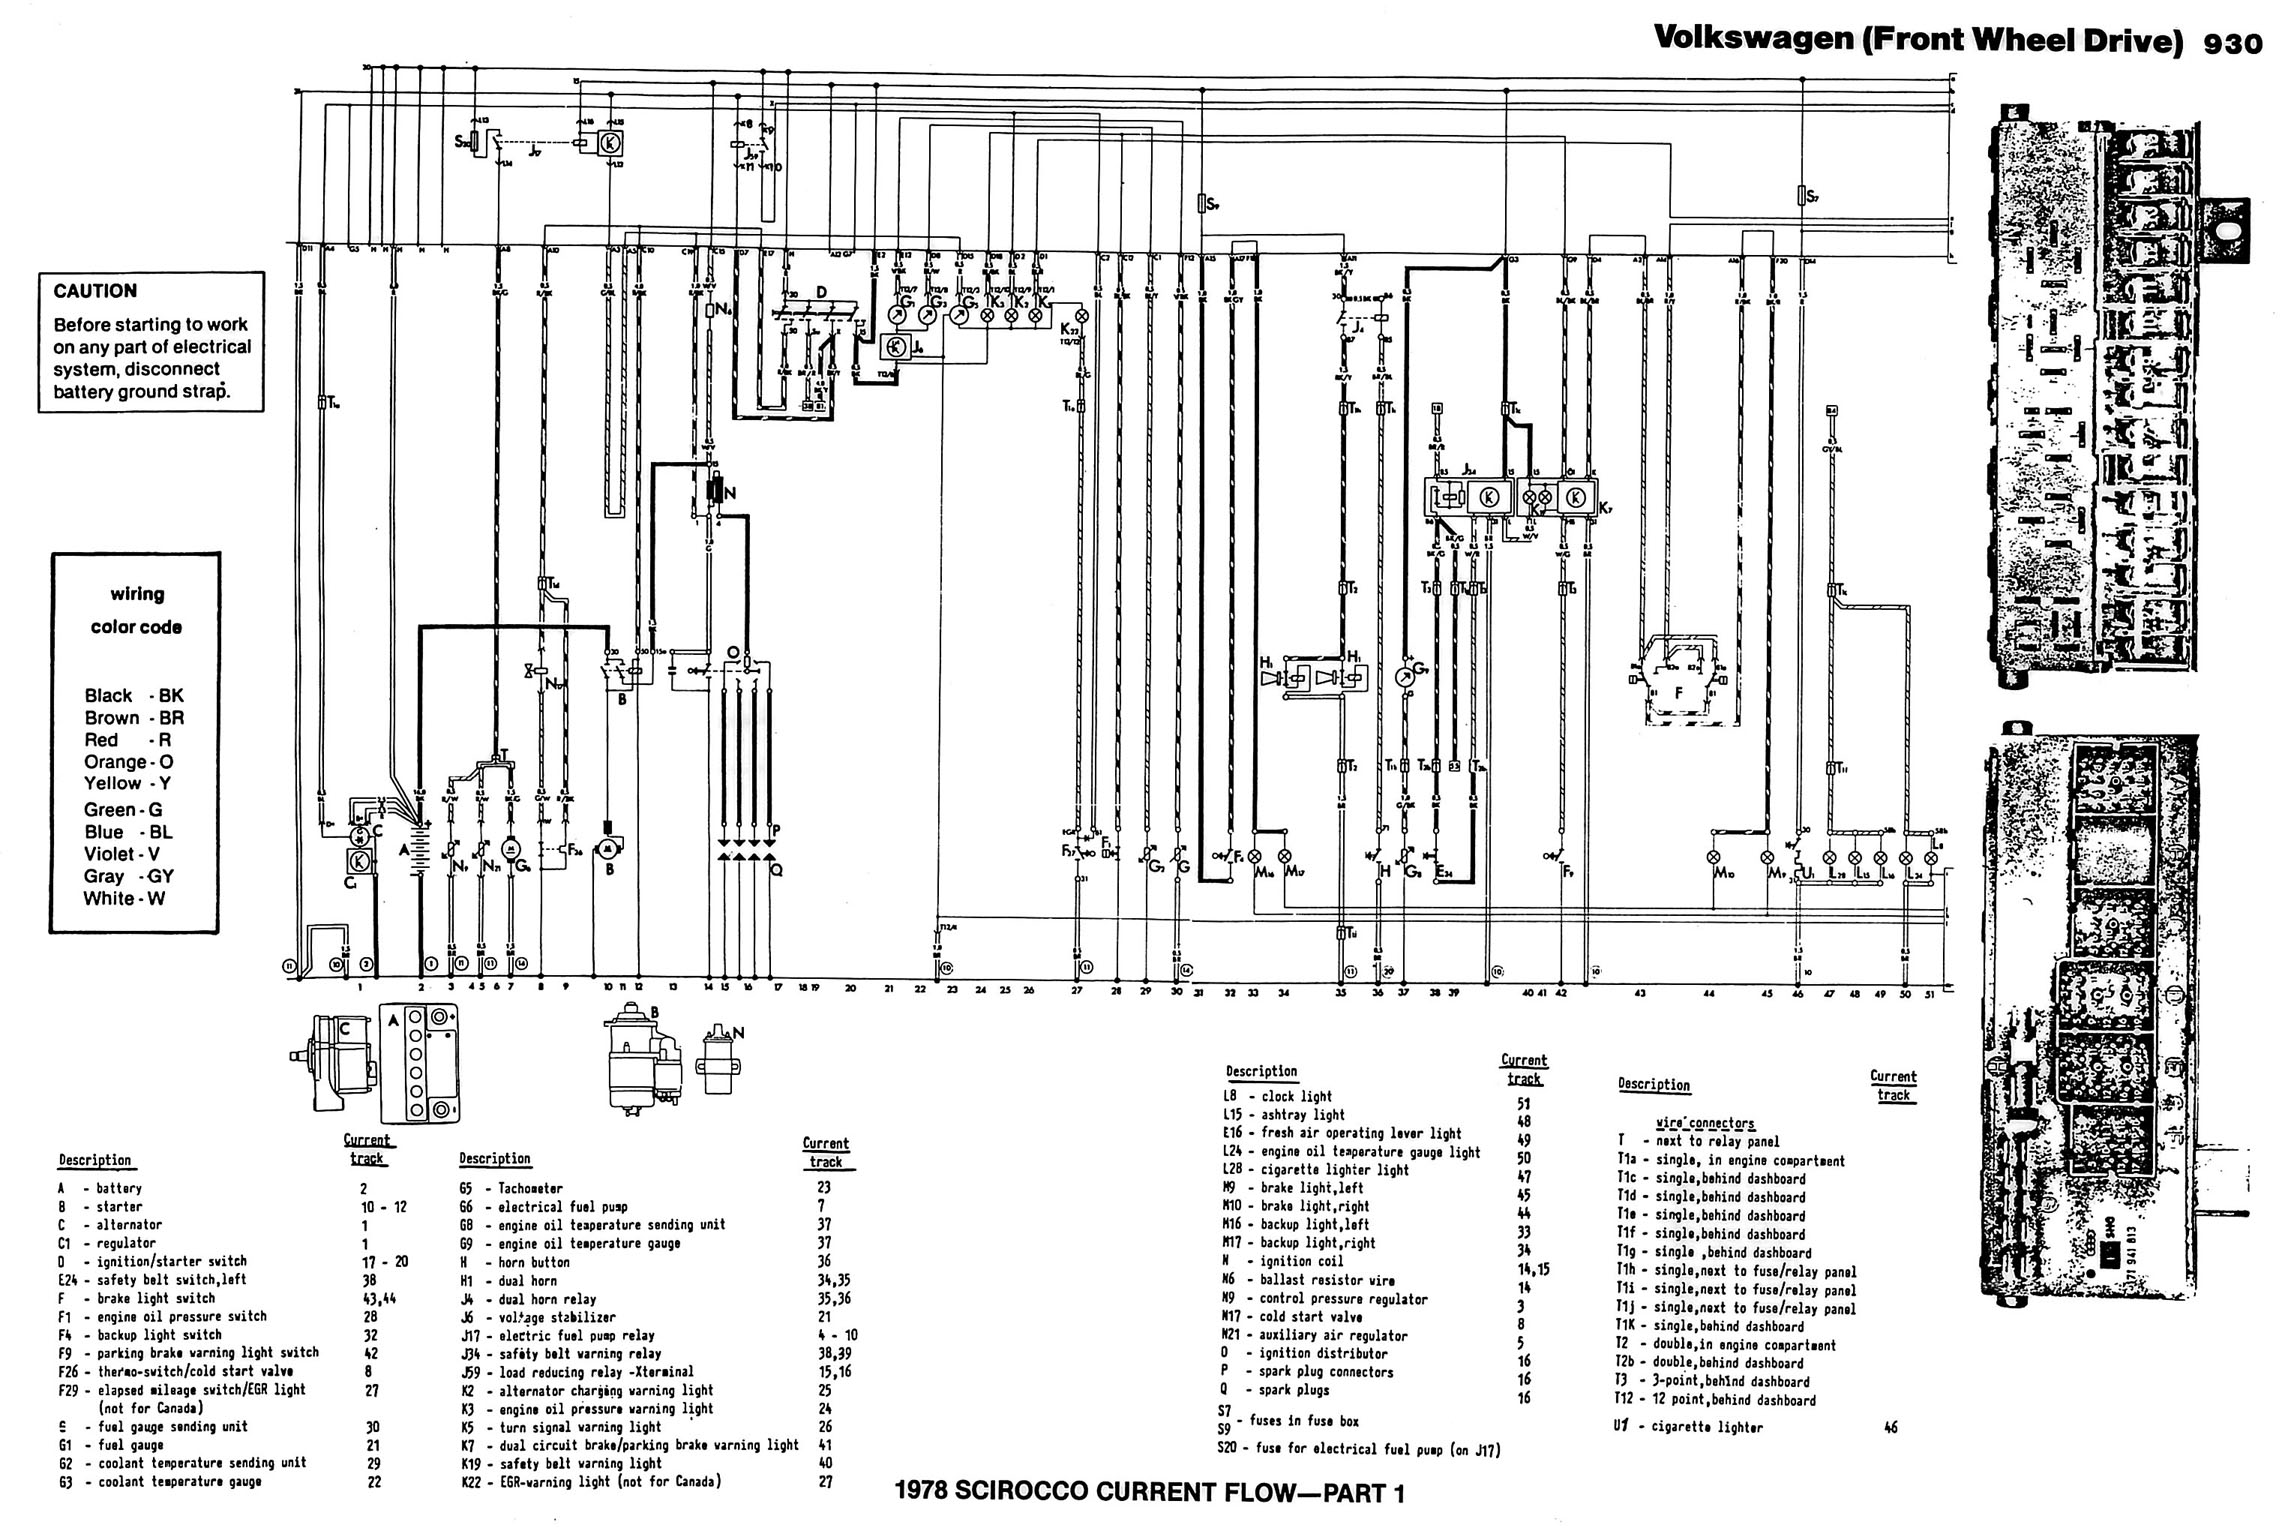 1984 Vw Scirocco Ignition Wiring Diagram Wiring Diagram Approval A Approval A Zaafran It